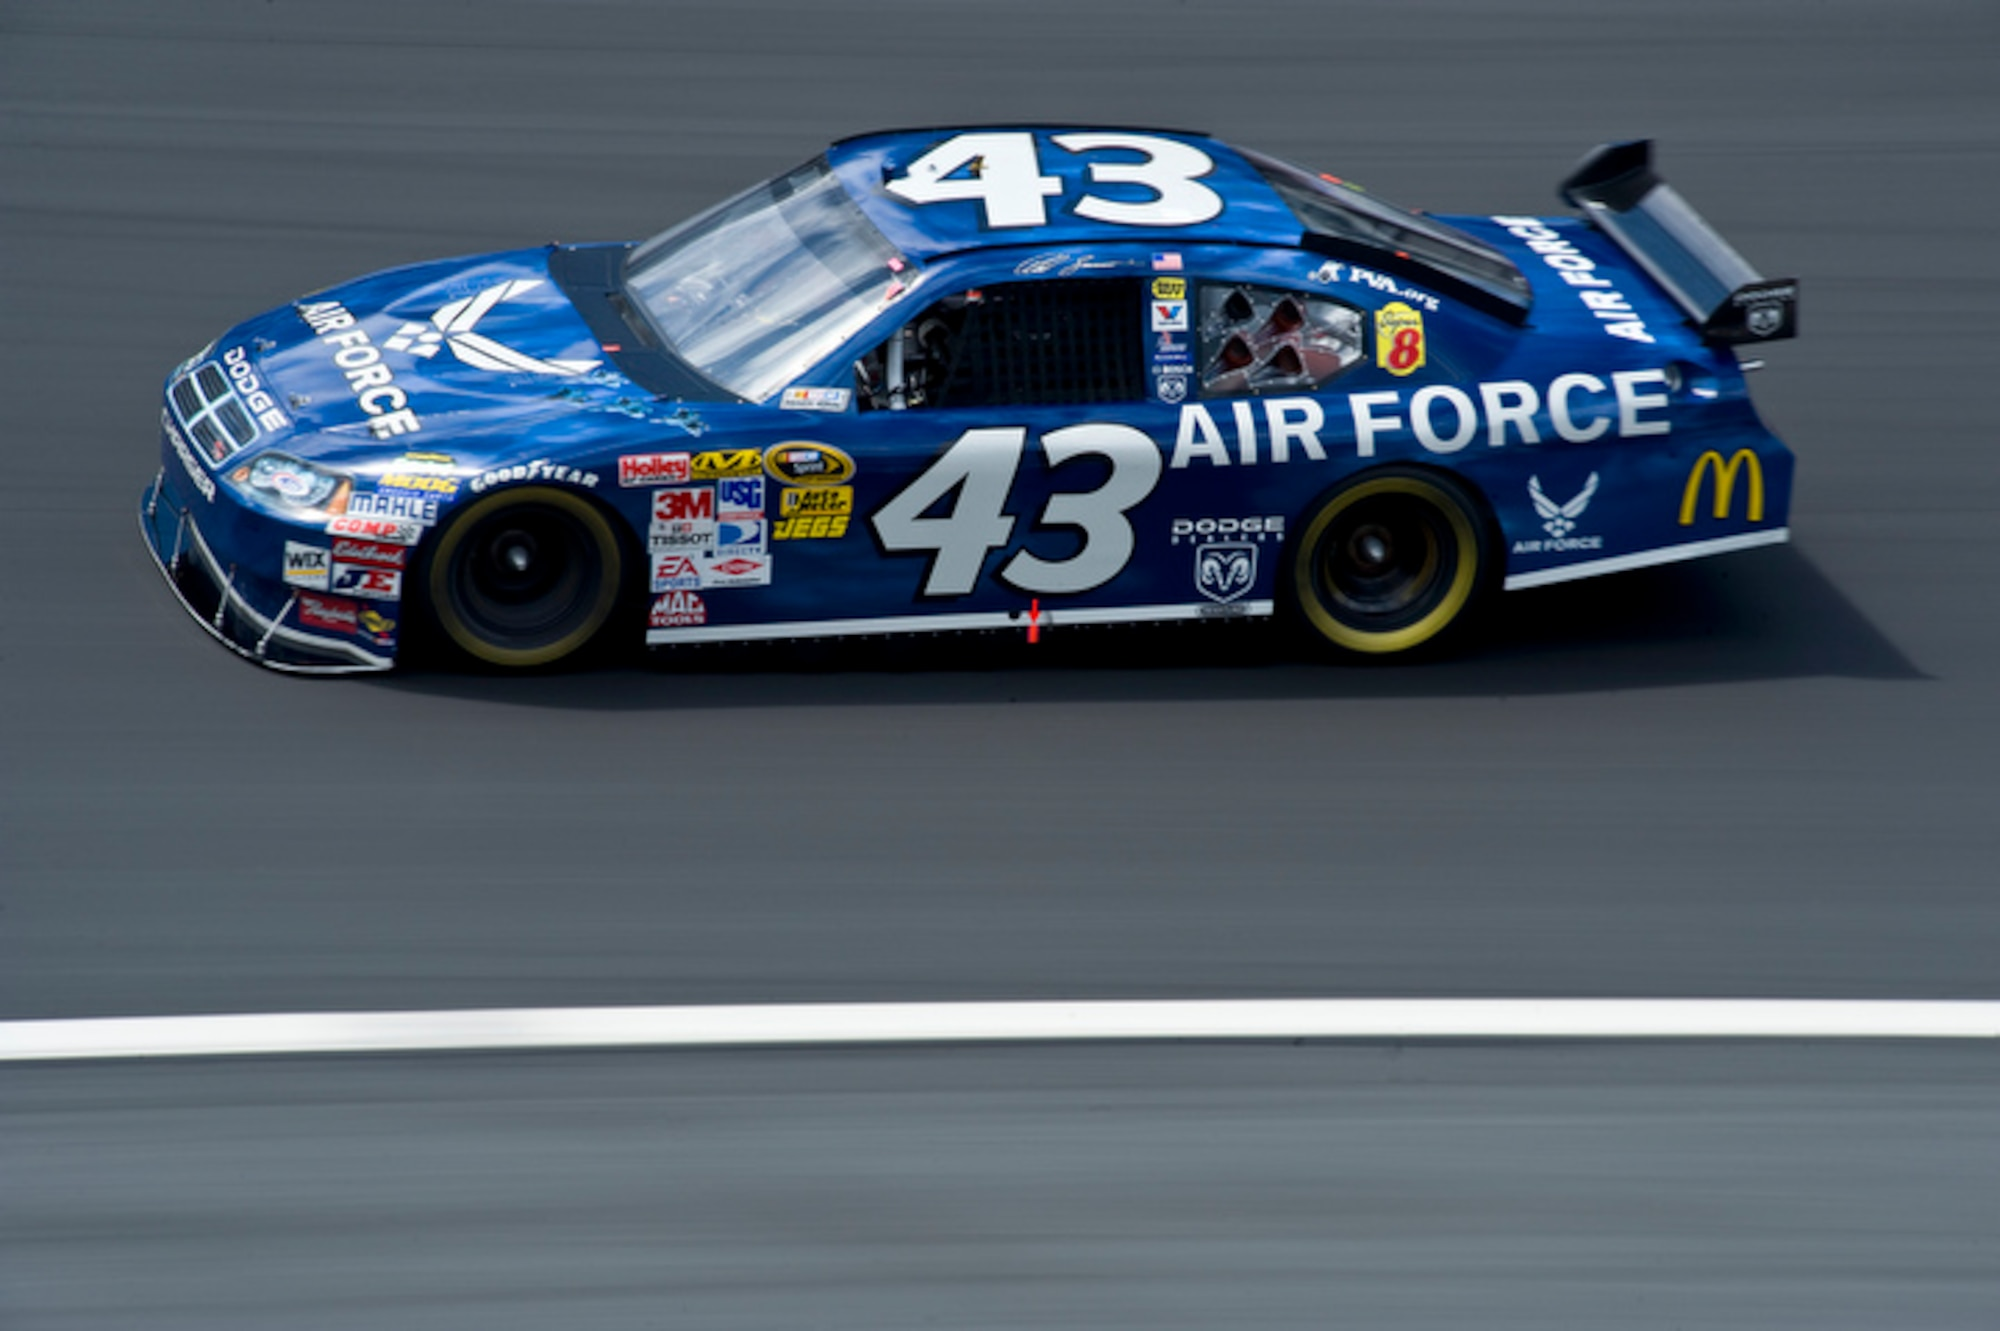 Reed Sorenson, NASCAR driver of the Richard Petty Motorsports #43 Air Force Dodge Charger, races around the Lowe's Motor Speedway at 186 mph during Coca-Cola 600 Sprint Cup race May 25. The #43 was painted in an Air Force paint scheme as a Salute to the Military for Memorial Day. (U.S. Air Force photo by/Staff Sgt. Bennie J. Davis III)